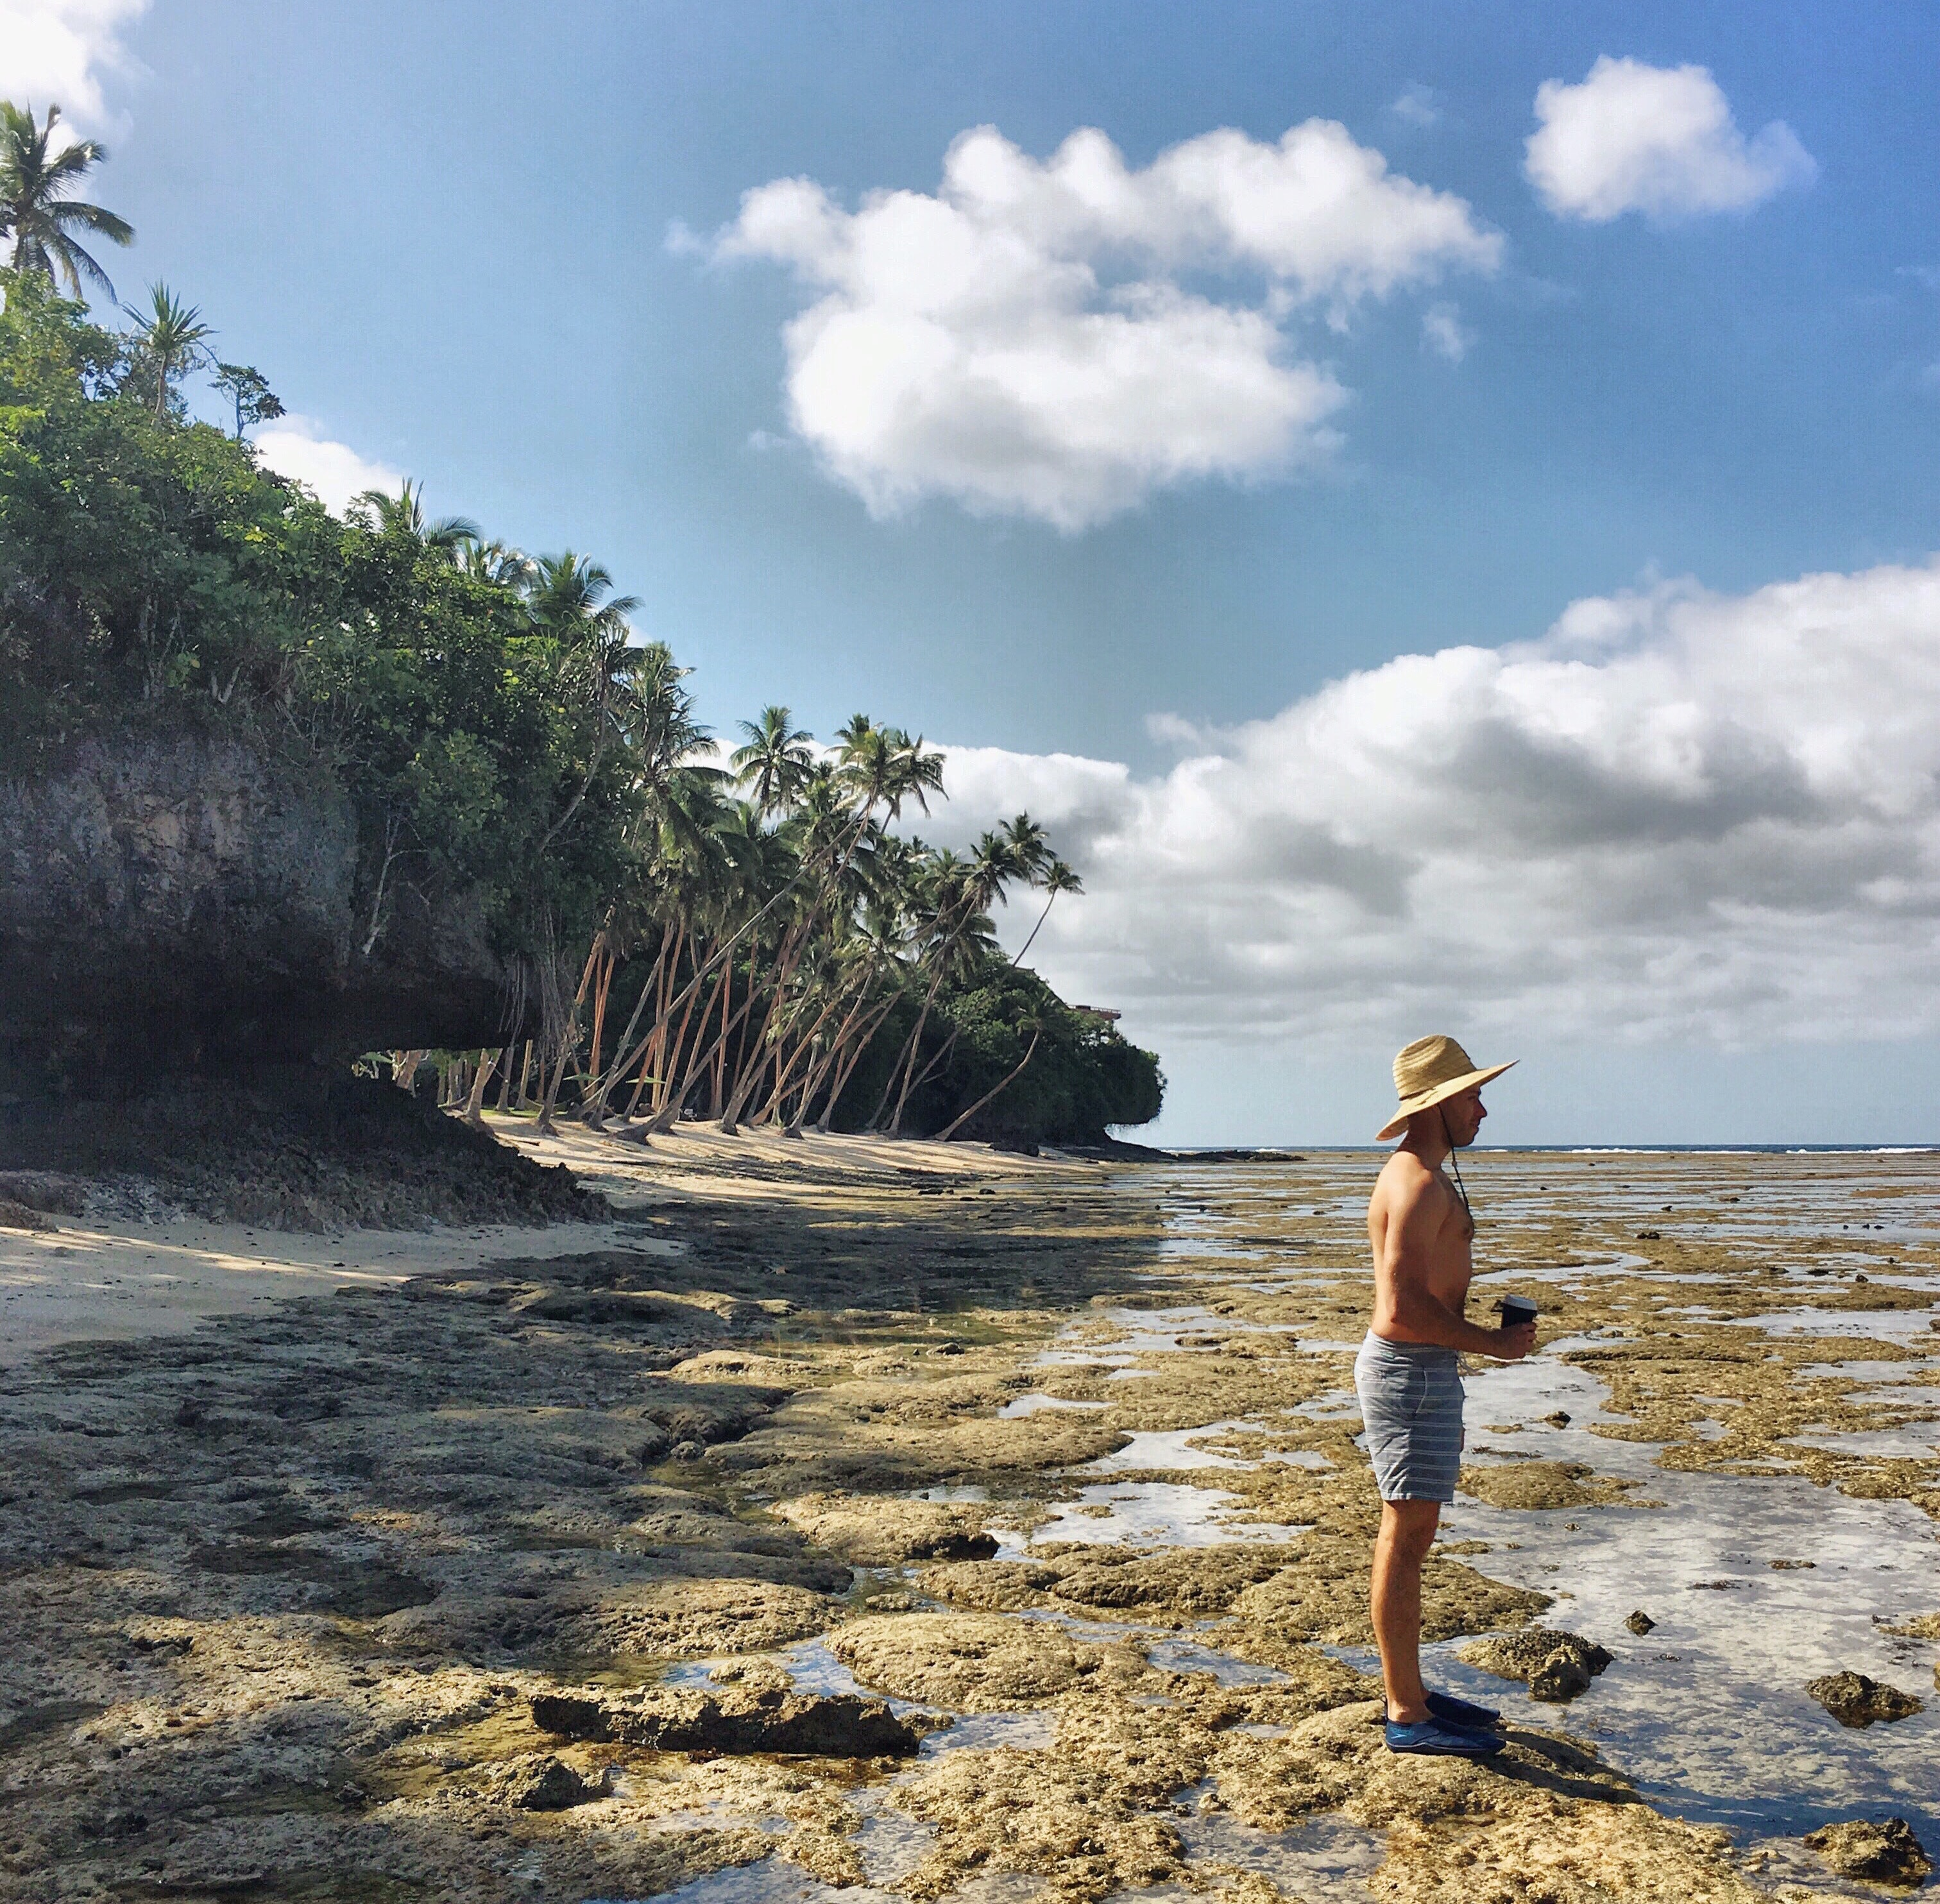 The writer's husband explores Namale's tidepools, which are brimming with life.